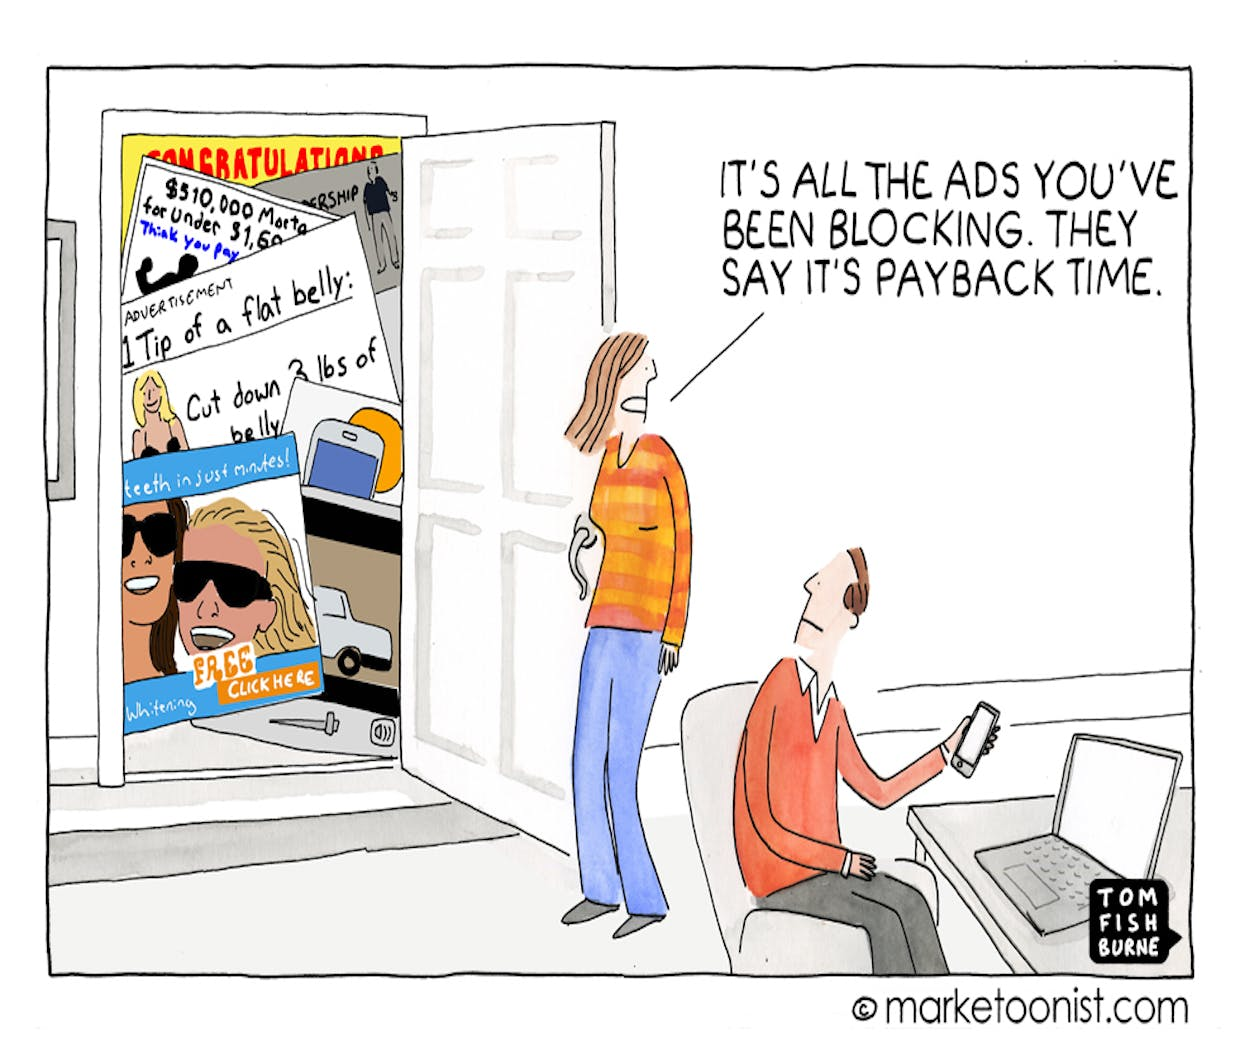 ad_blocking_marketoonist_21_10_15